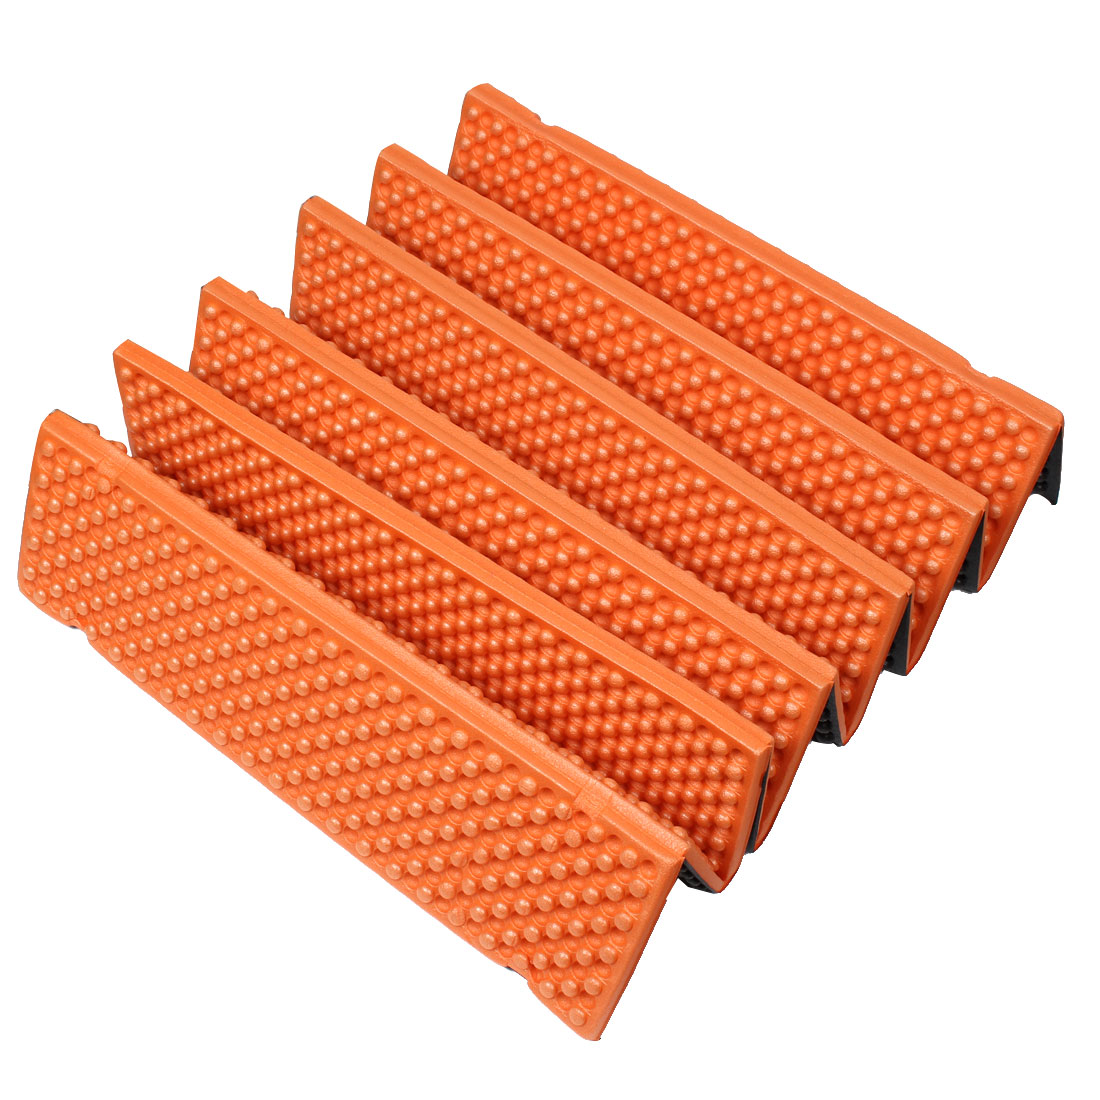 Hiking Mountaineering Camping Picnic Tent Foldable Mat Sleeping Foam Pad Orange